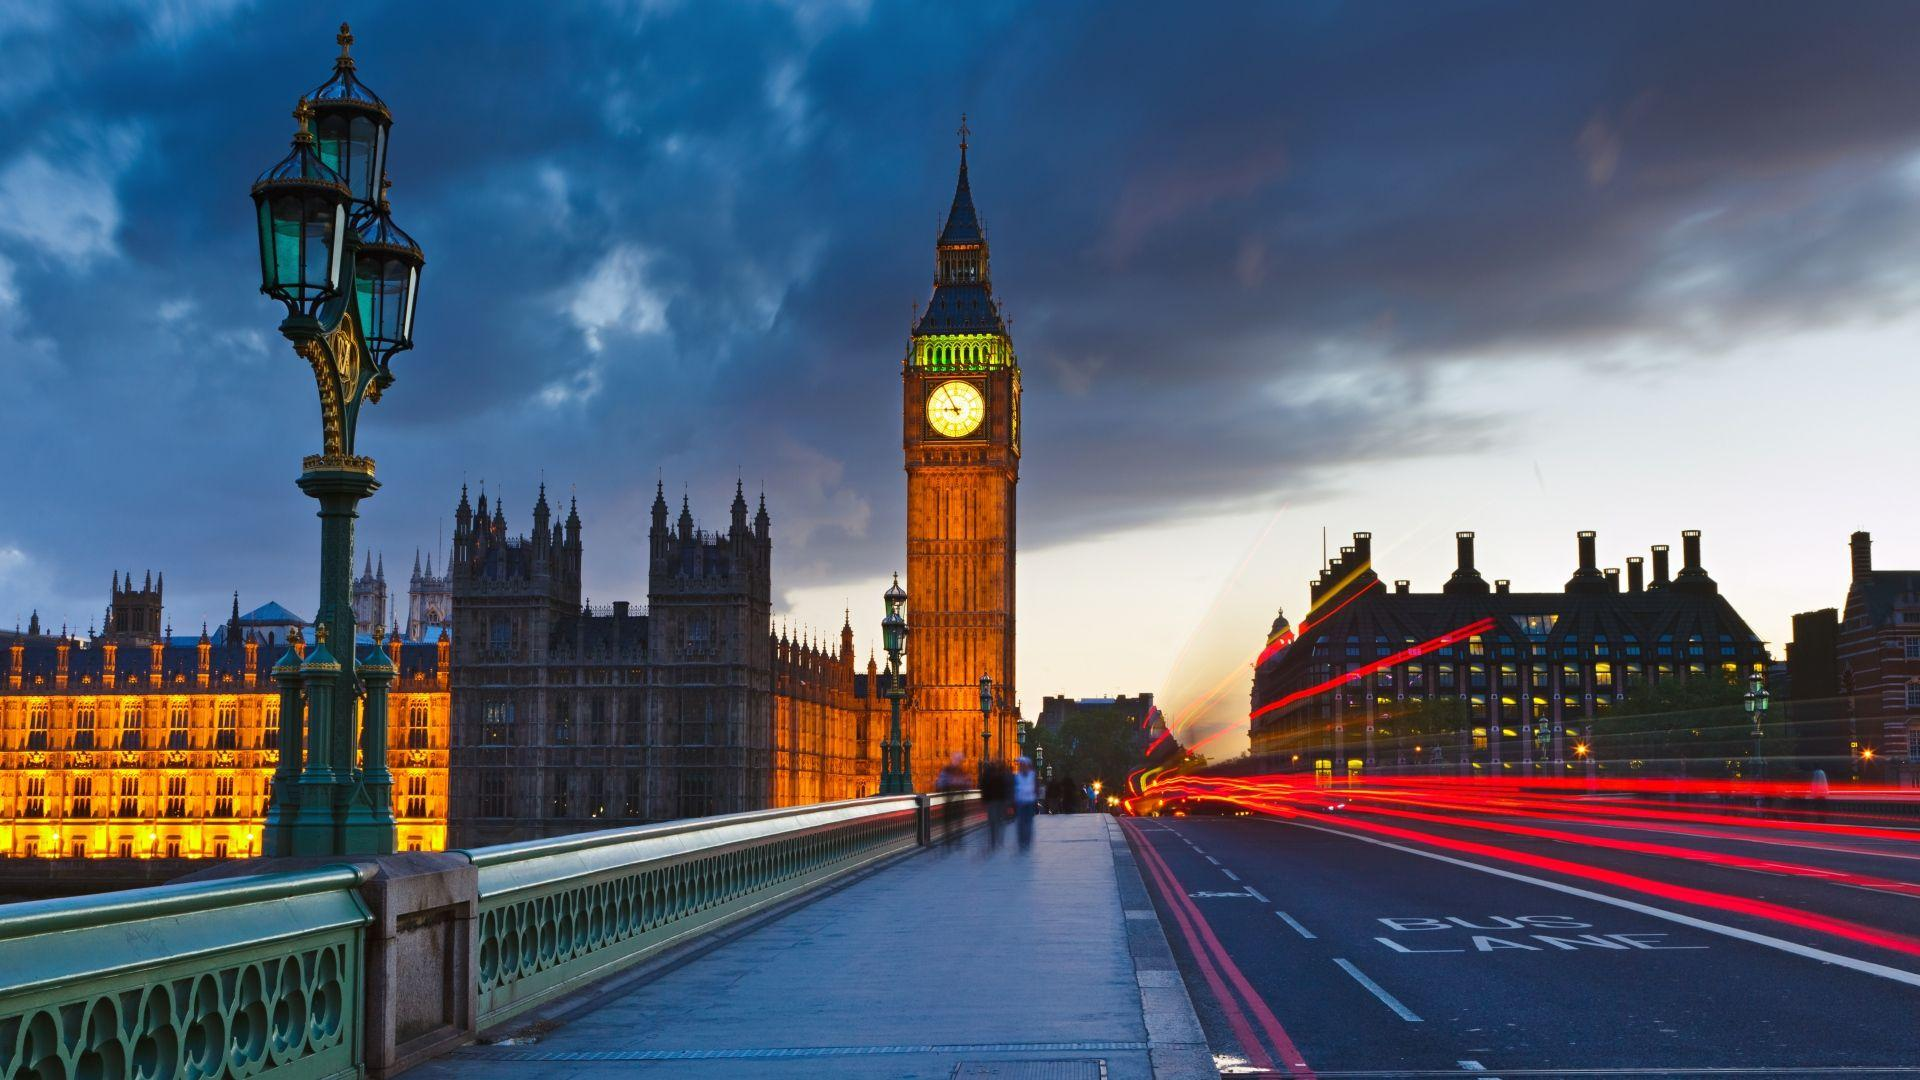 London wallpaper – A Style Statement For Your Computer